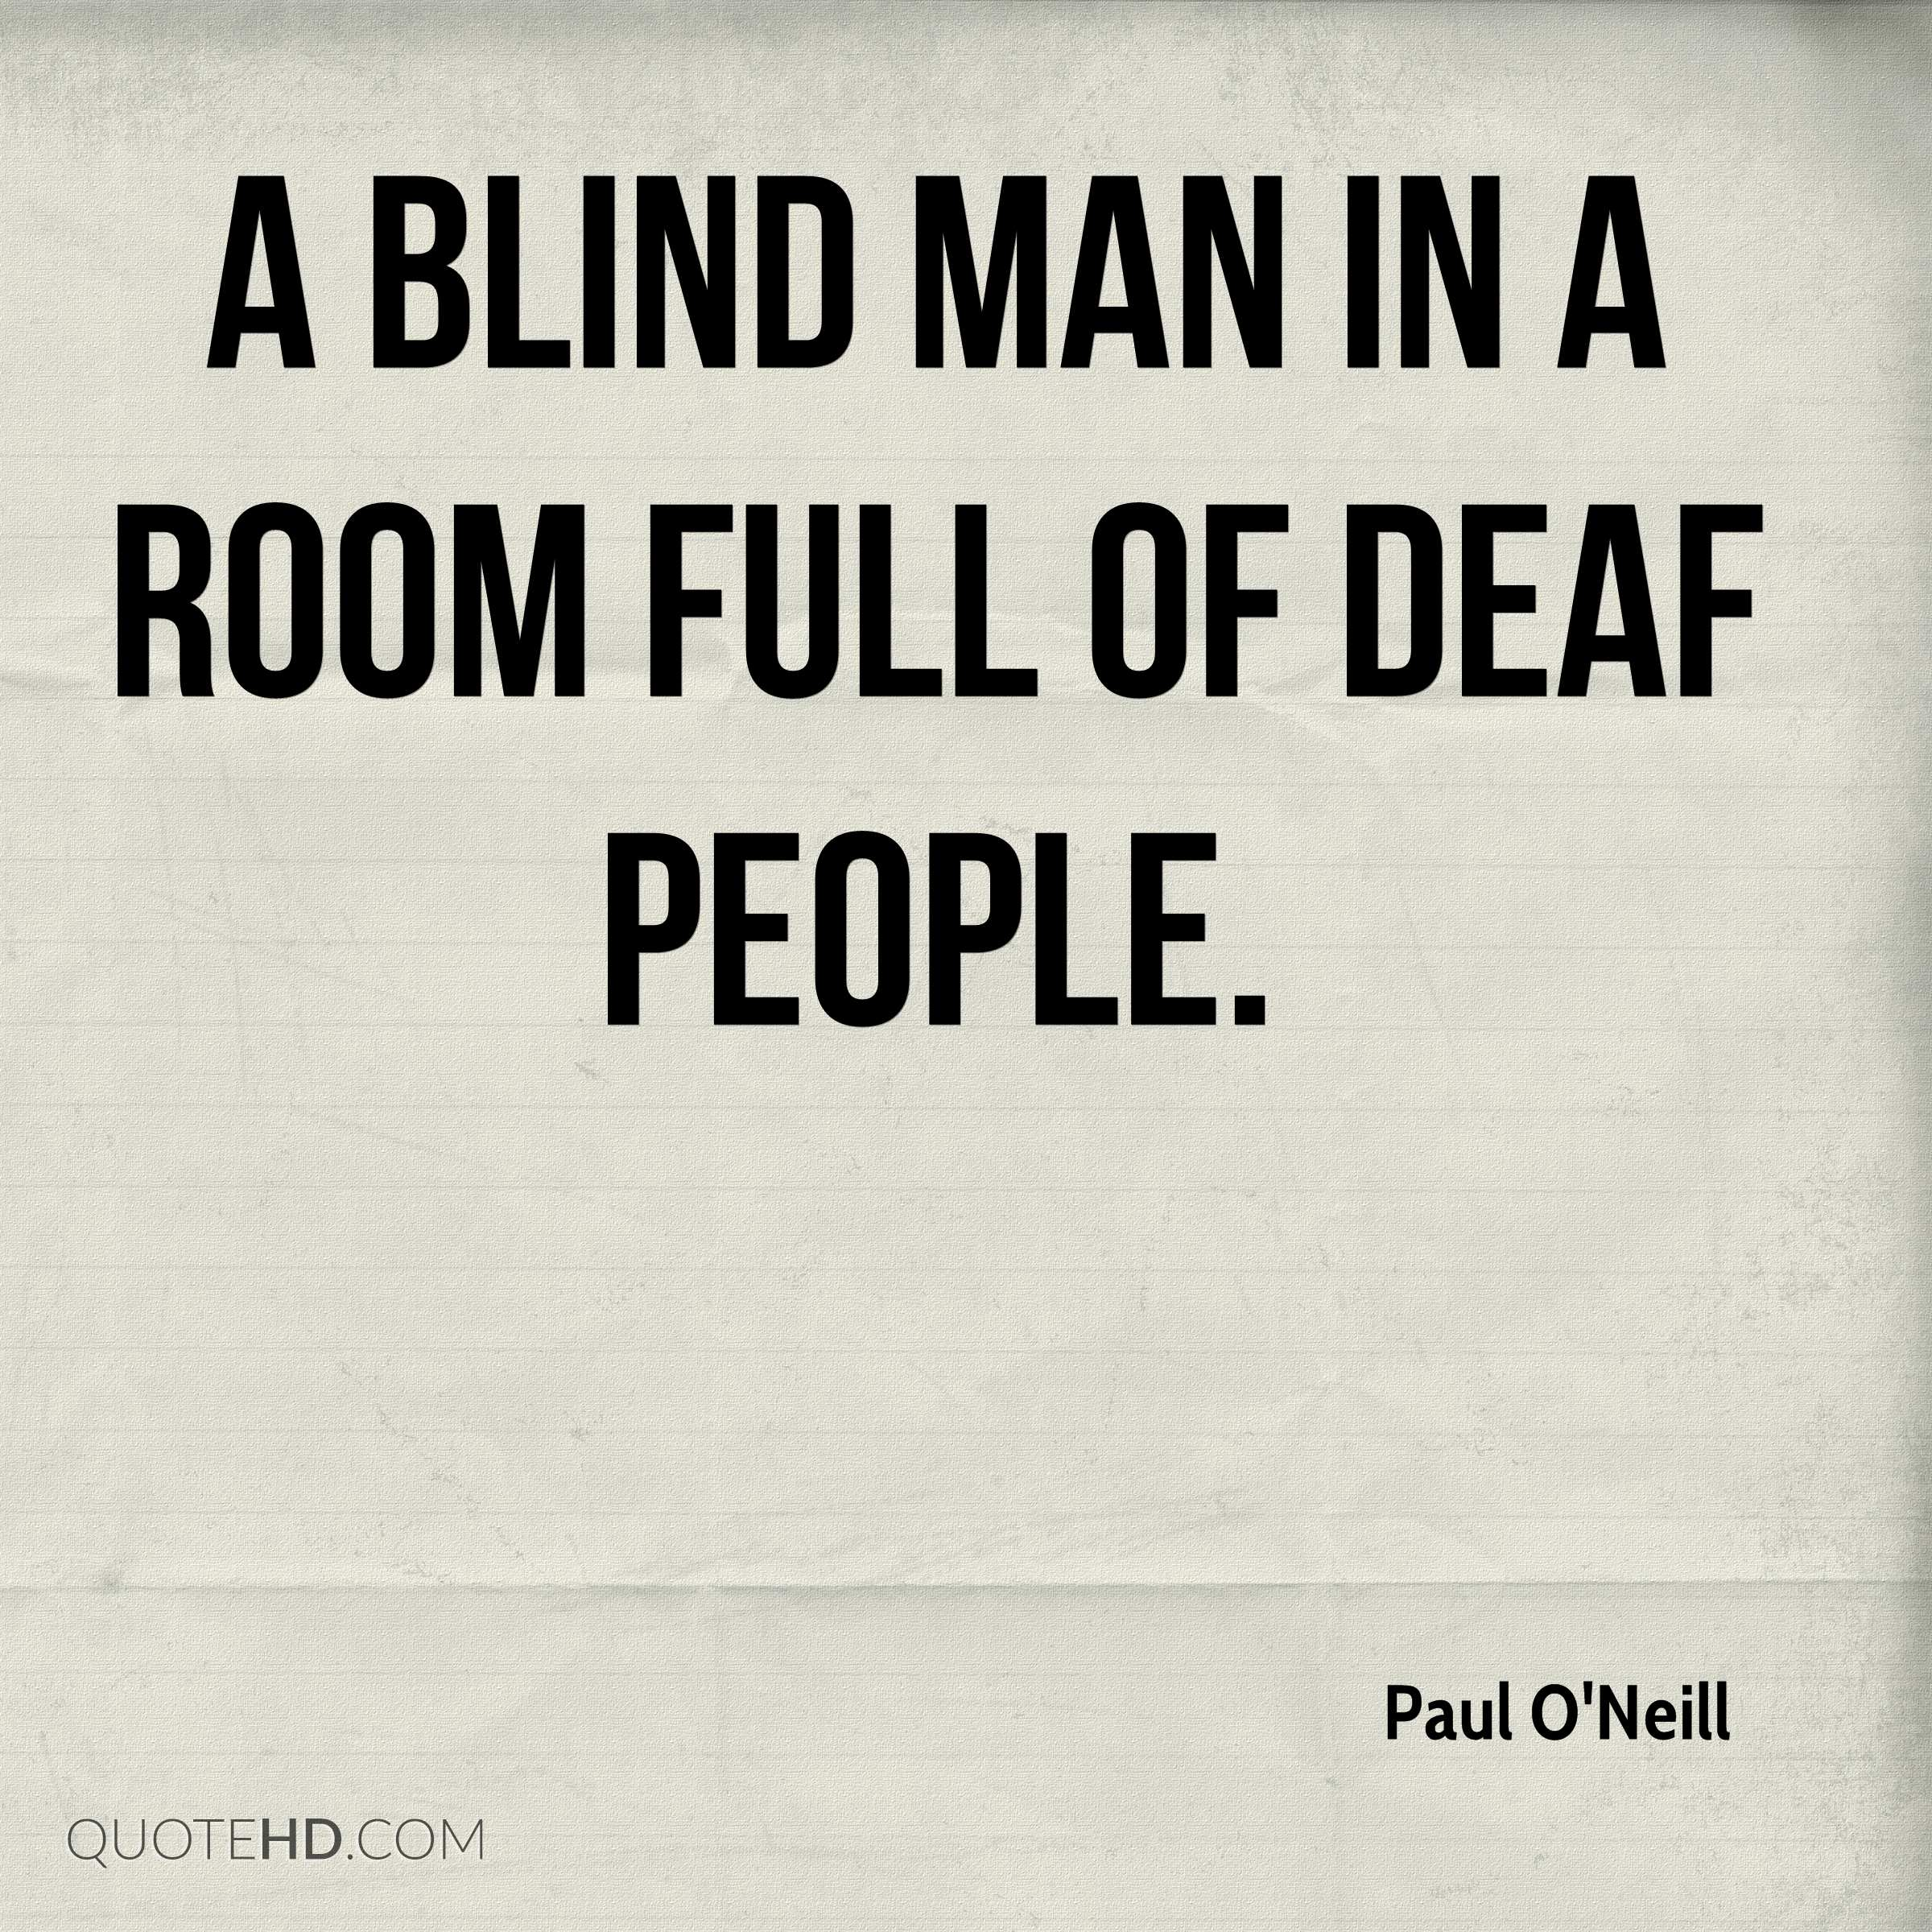 Blind Quotes: Paul O'Neill Quotes